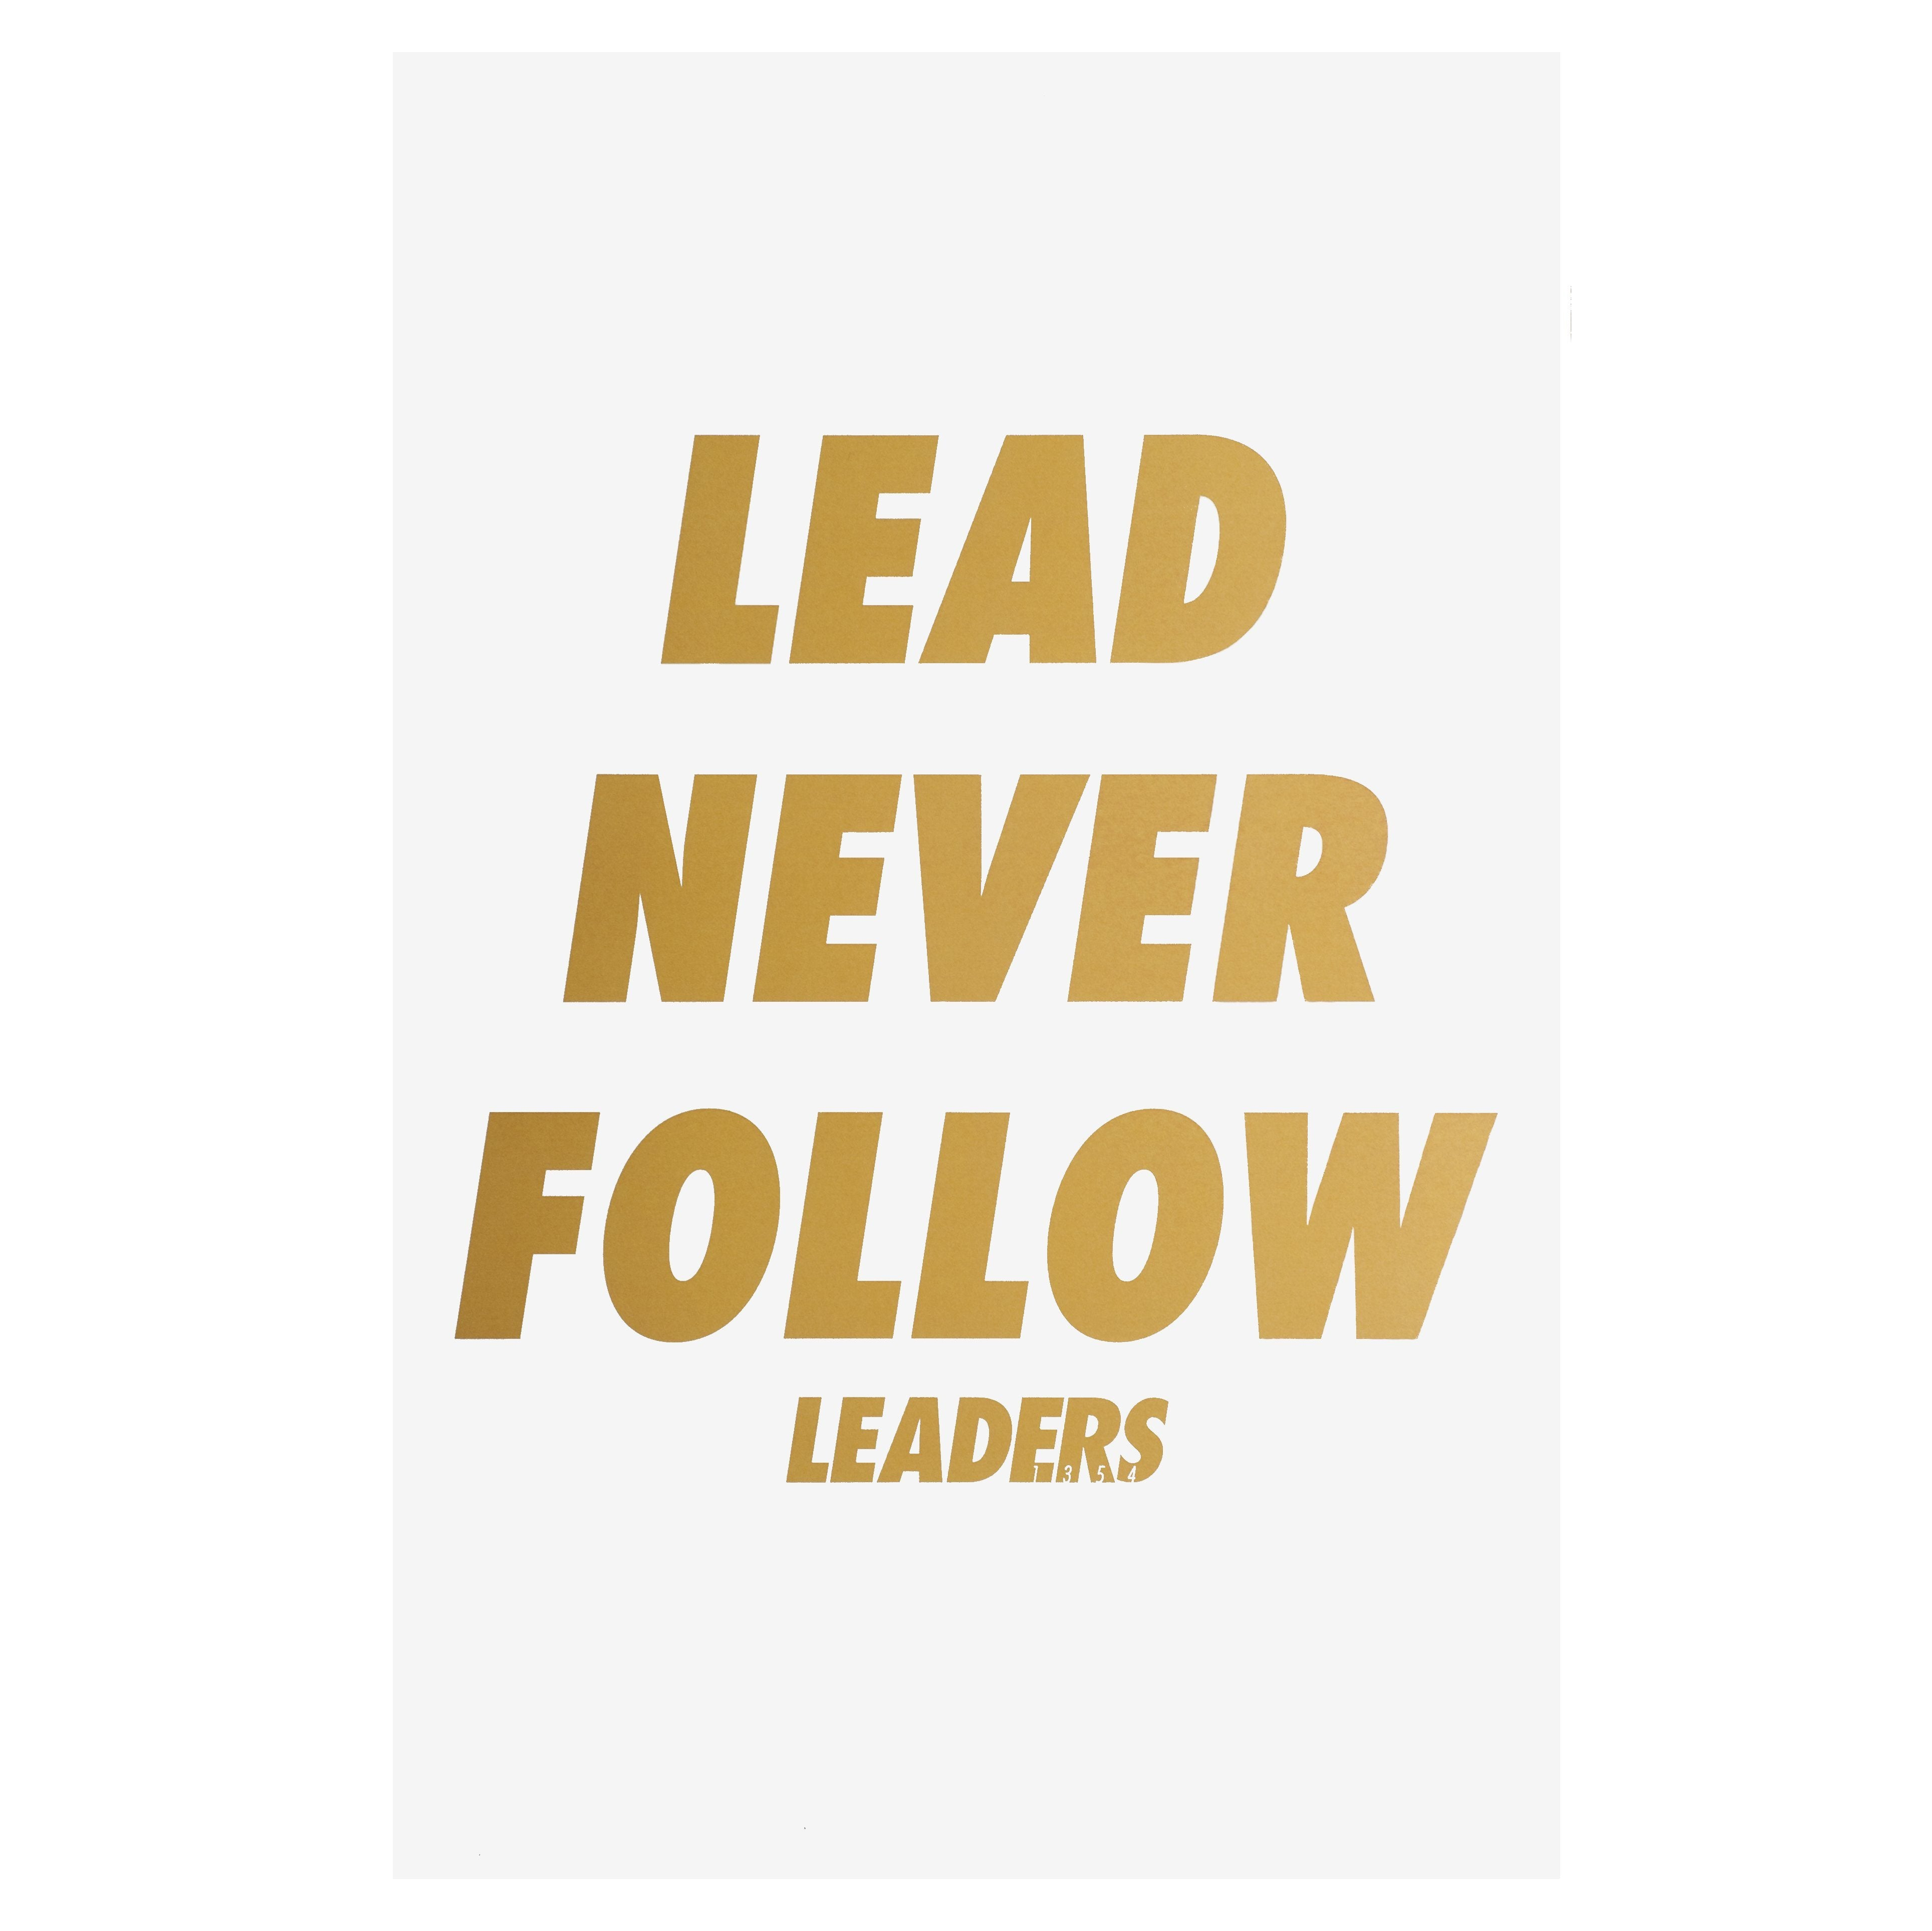 Lead Never Follow Print - leaders1354